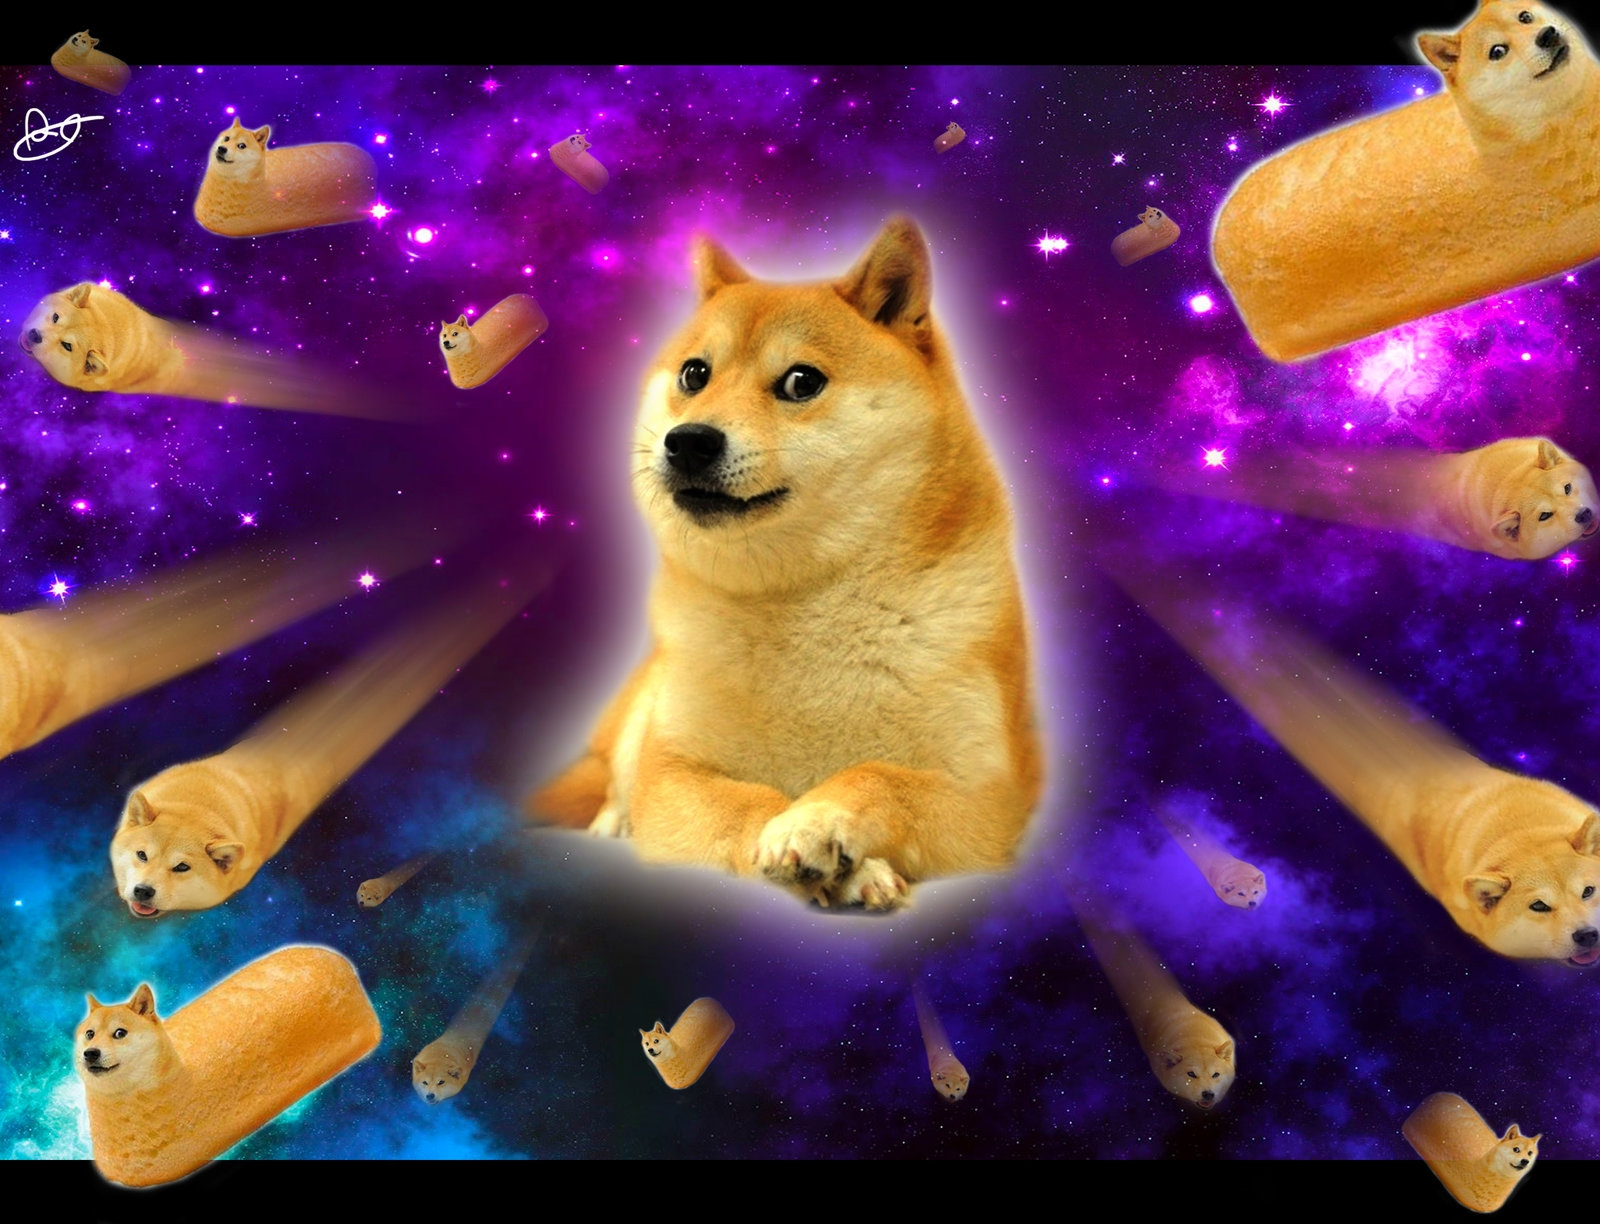 14011 doge in space - photo #8